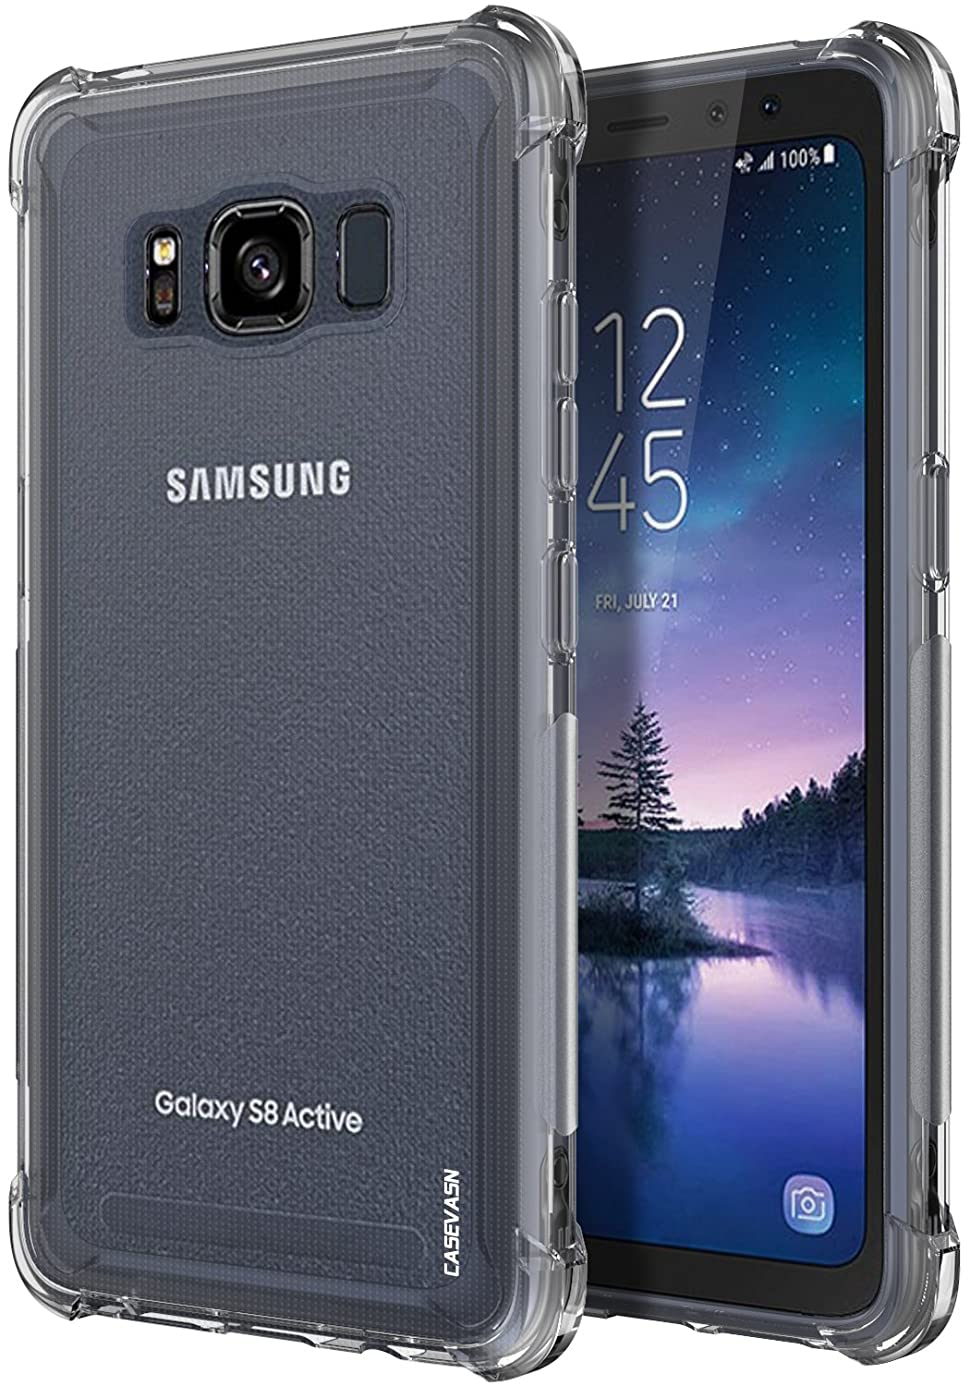 Galaxy S8 Active Case, CASEVASN [Shockproof] Anti-Scratches Flexible TPU Gel Slim Fit Soft Skin Silicone Protective Case Cover for Samsung Galaxy S8 Active (Clear) ibe9411116